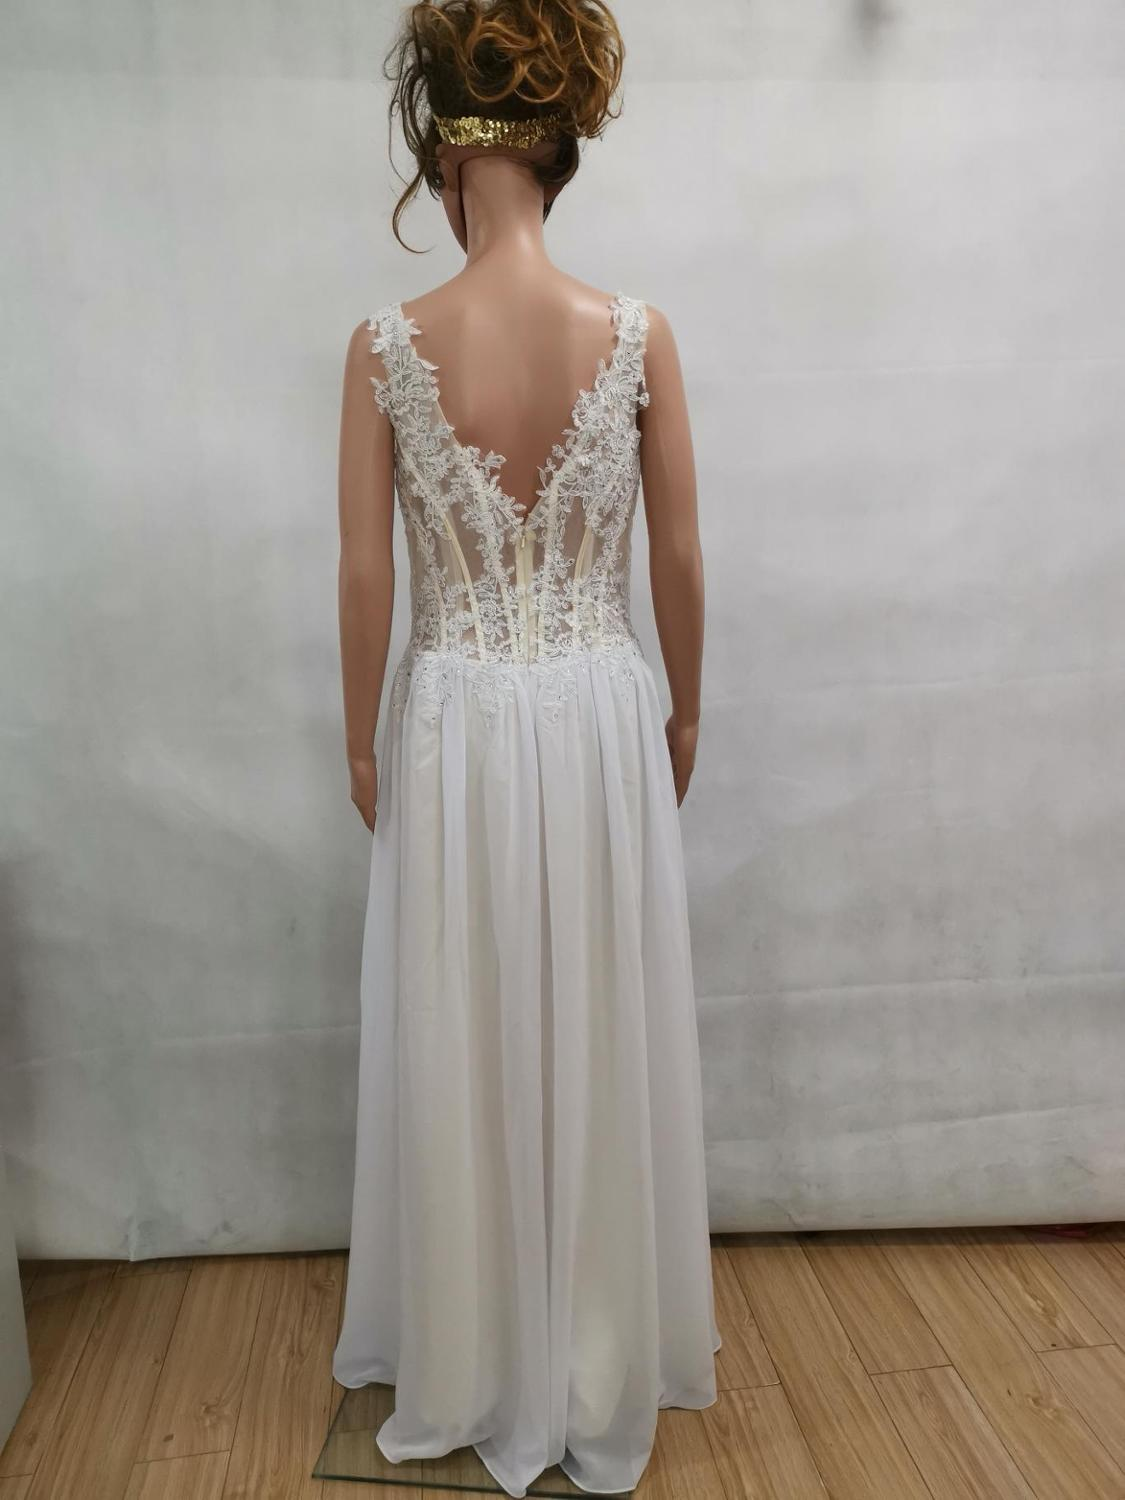 2019 New Luxury sexy prom gown Long Sequined Evening Dresses Beaded Prom Dress Hot sale in Evening Dresses from Weddings Events